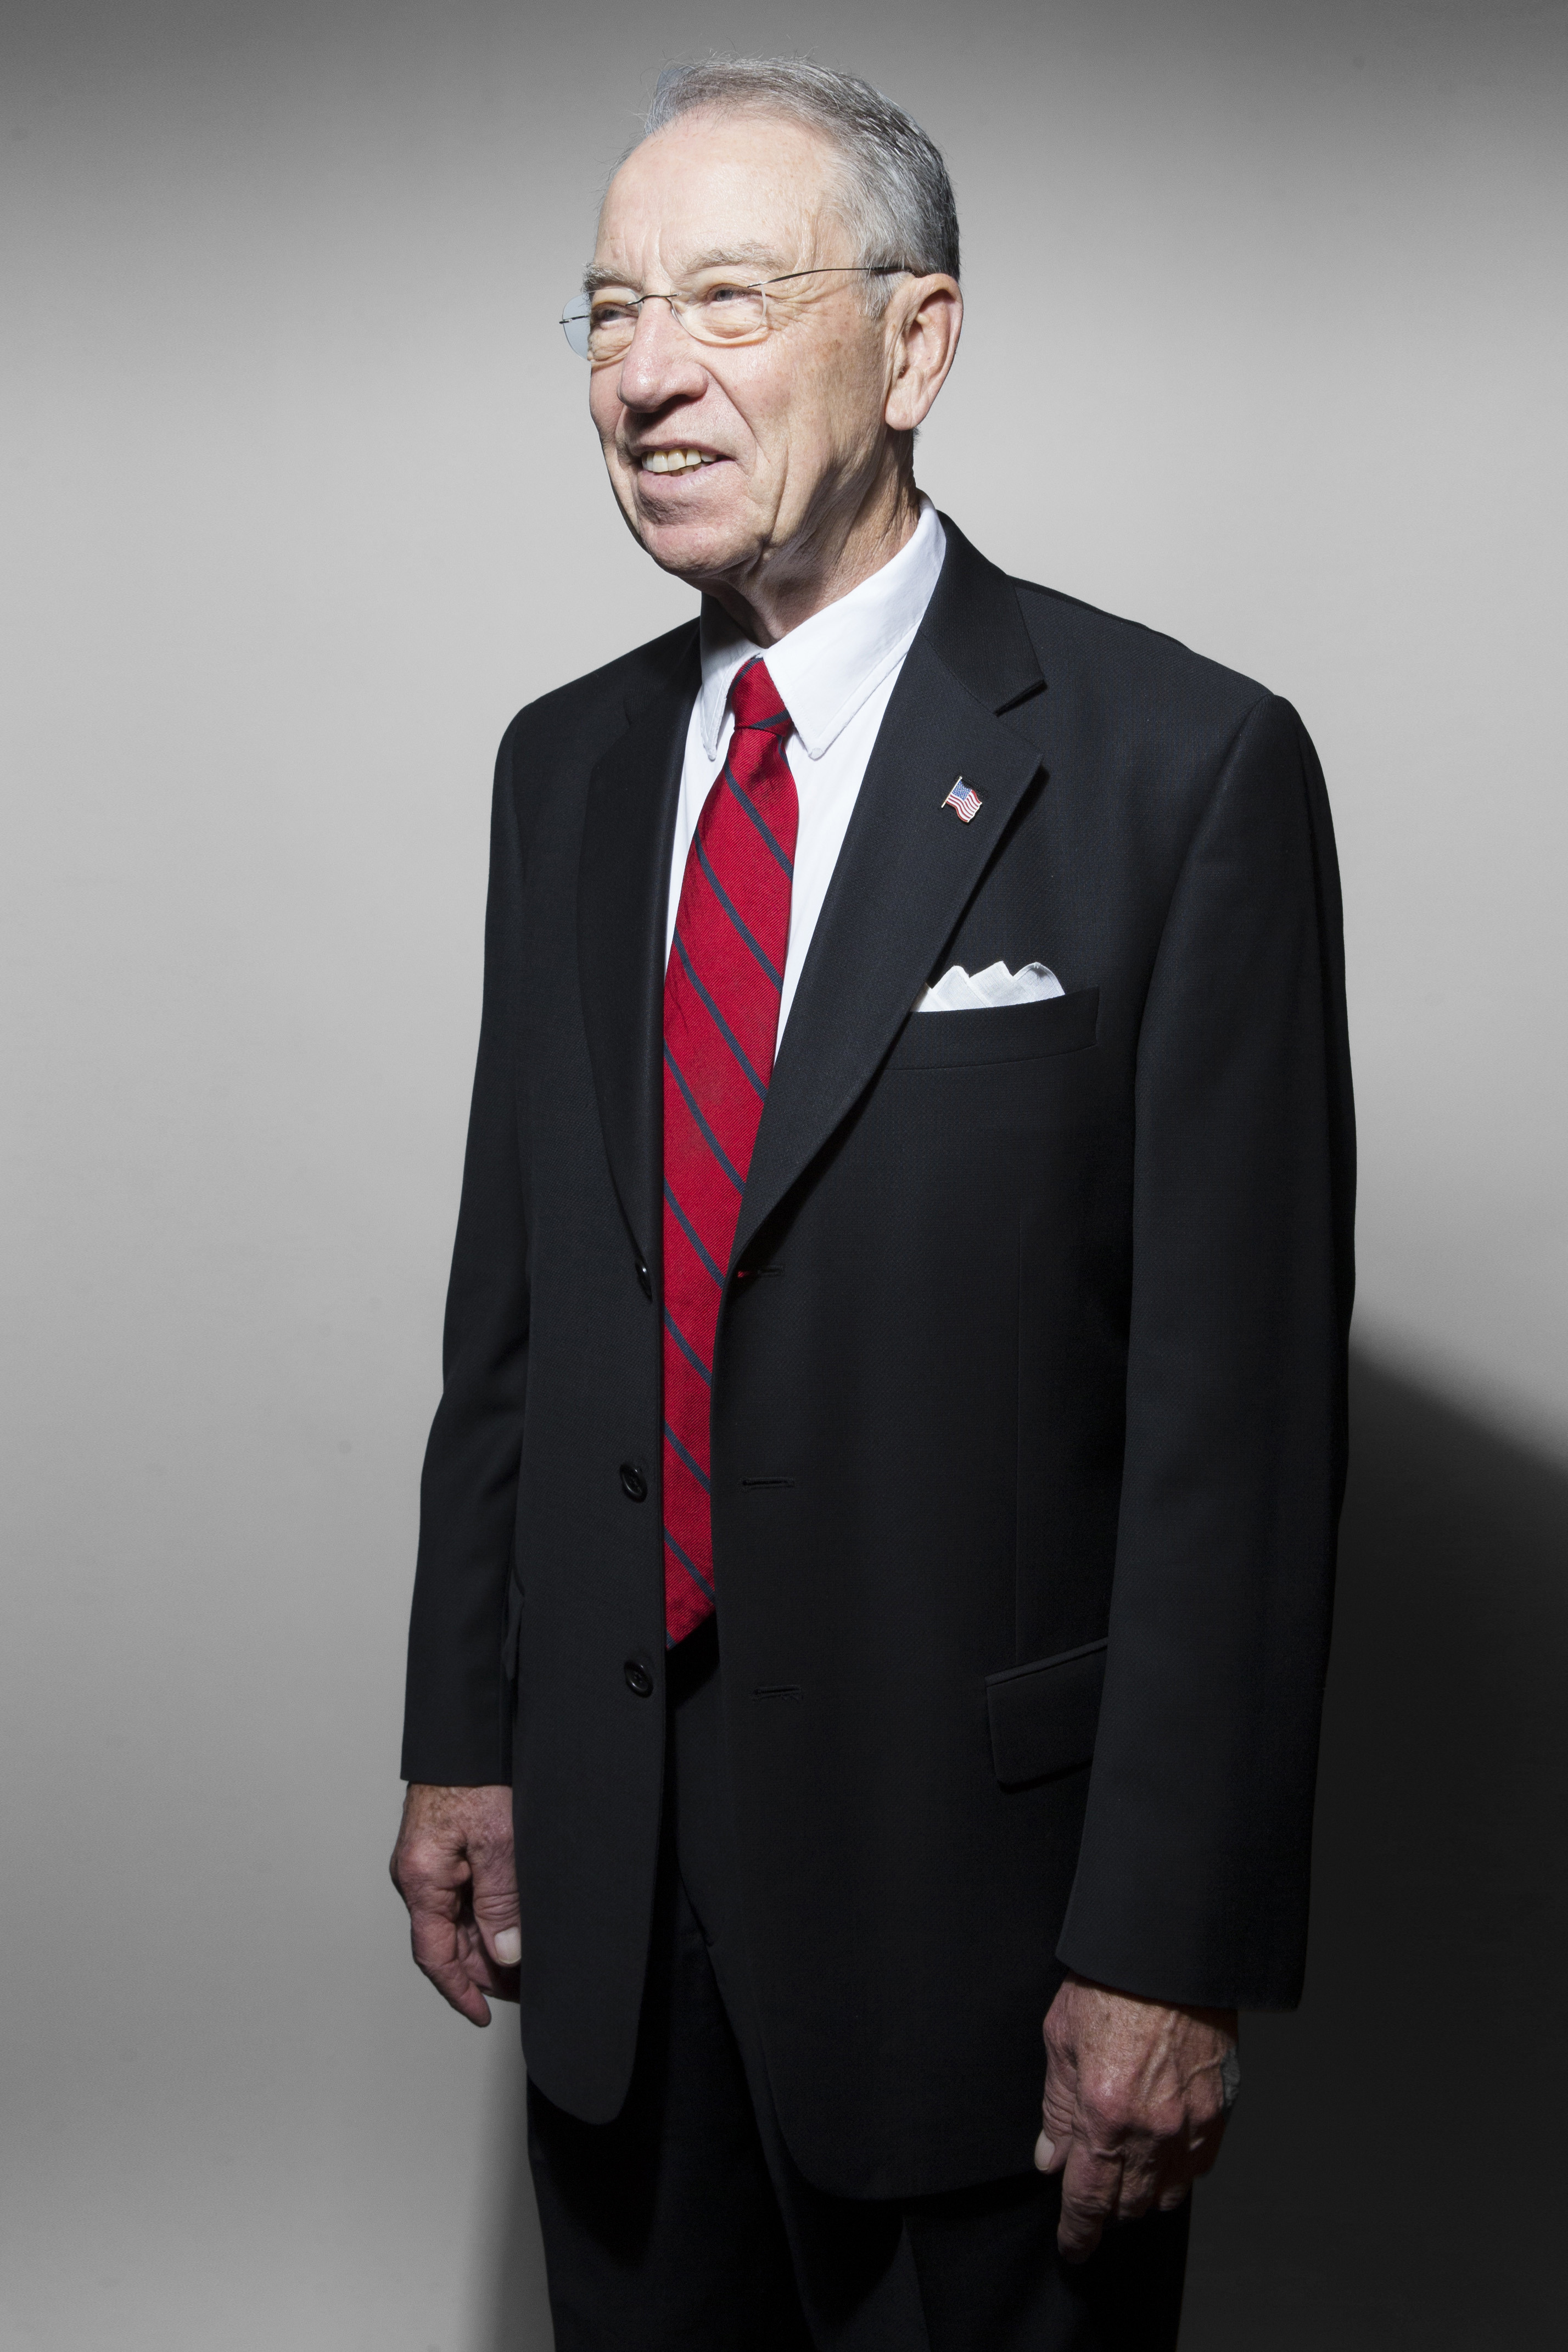 Chuck Grassley:                                The Iowa Senator, a Republican, has long fought for tough mandatory minimum sentences. As a bipartisan coalition tries to get criminal justice reform through Congress, he chairs a crucial committee that could make or break the effort.